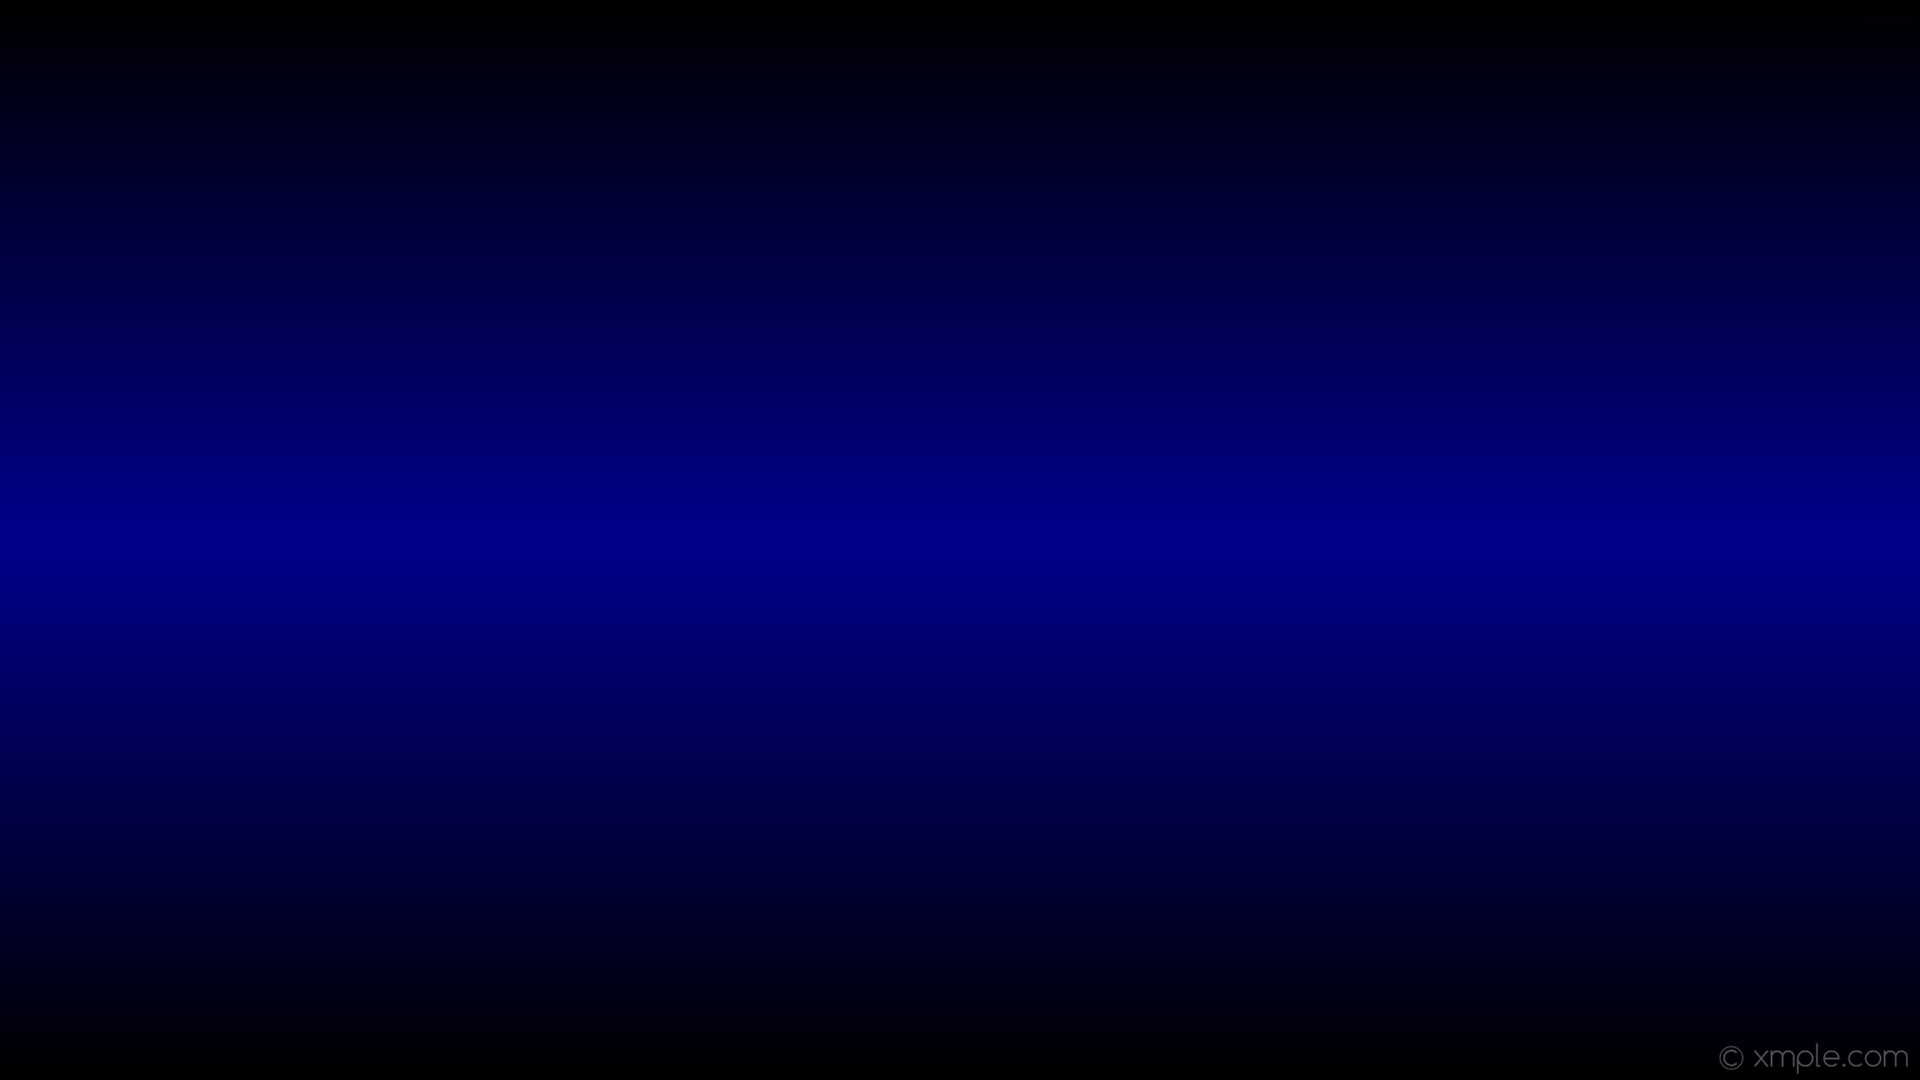 1920x1080 wallpaper linear black highlight blue gradient dark blue #000000 #00008b  270° 50%